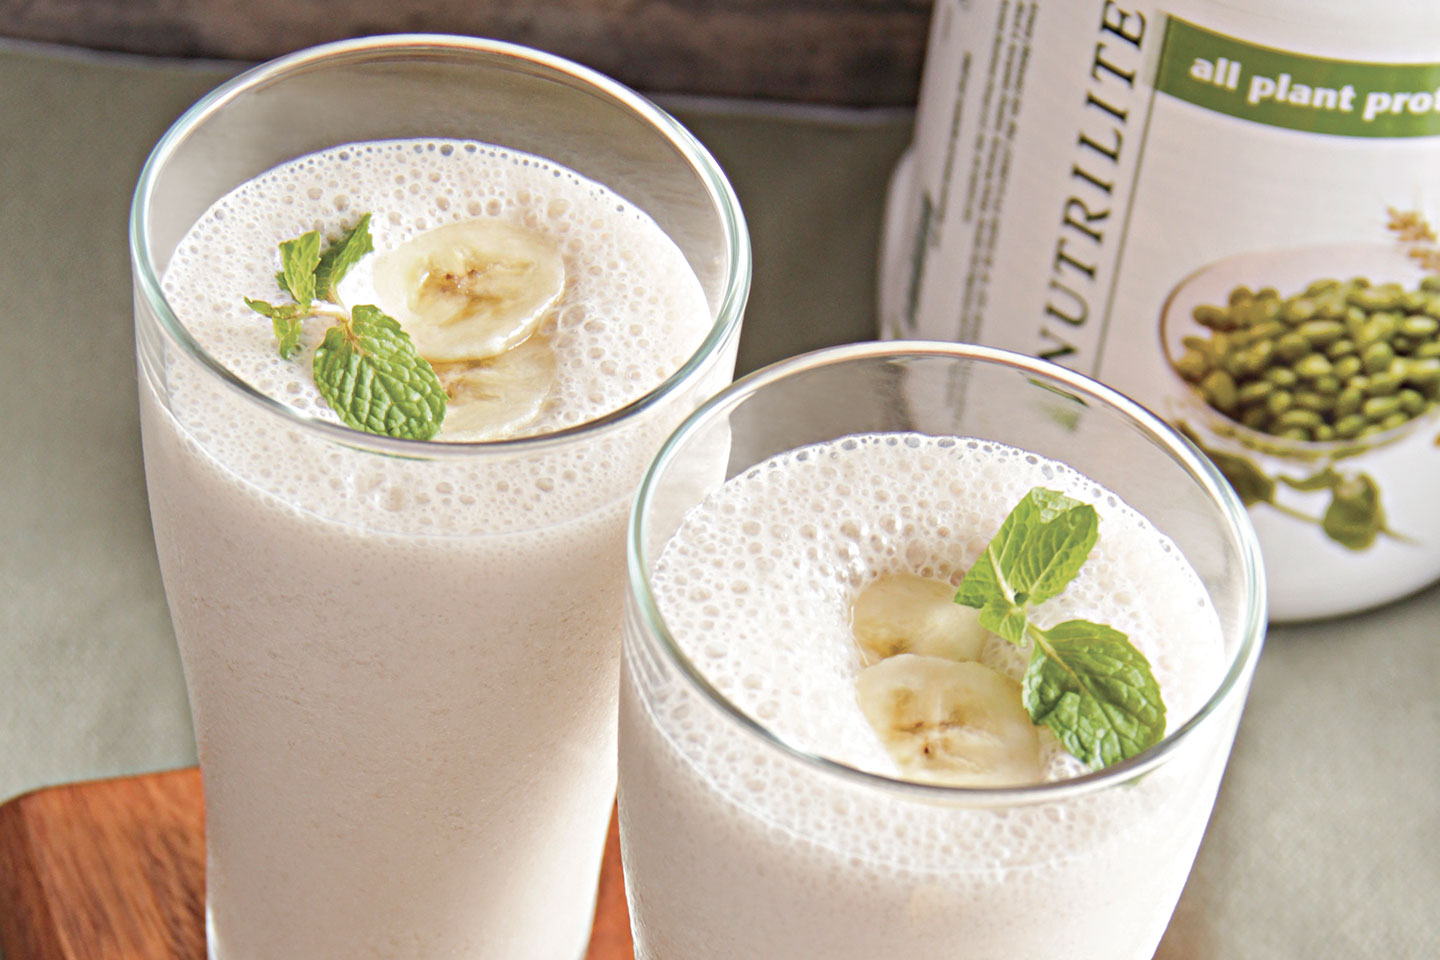 nutrilite-protein-recipes-banana-soy-milk-smoothie-cover.jpg